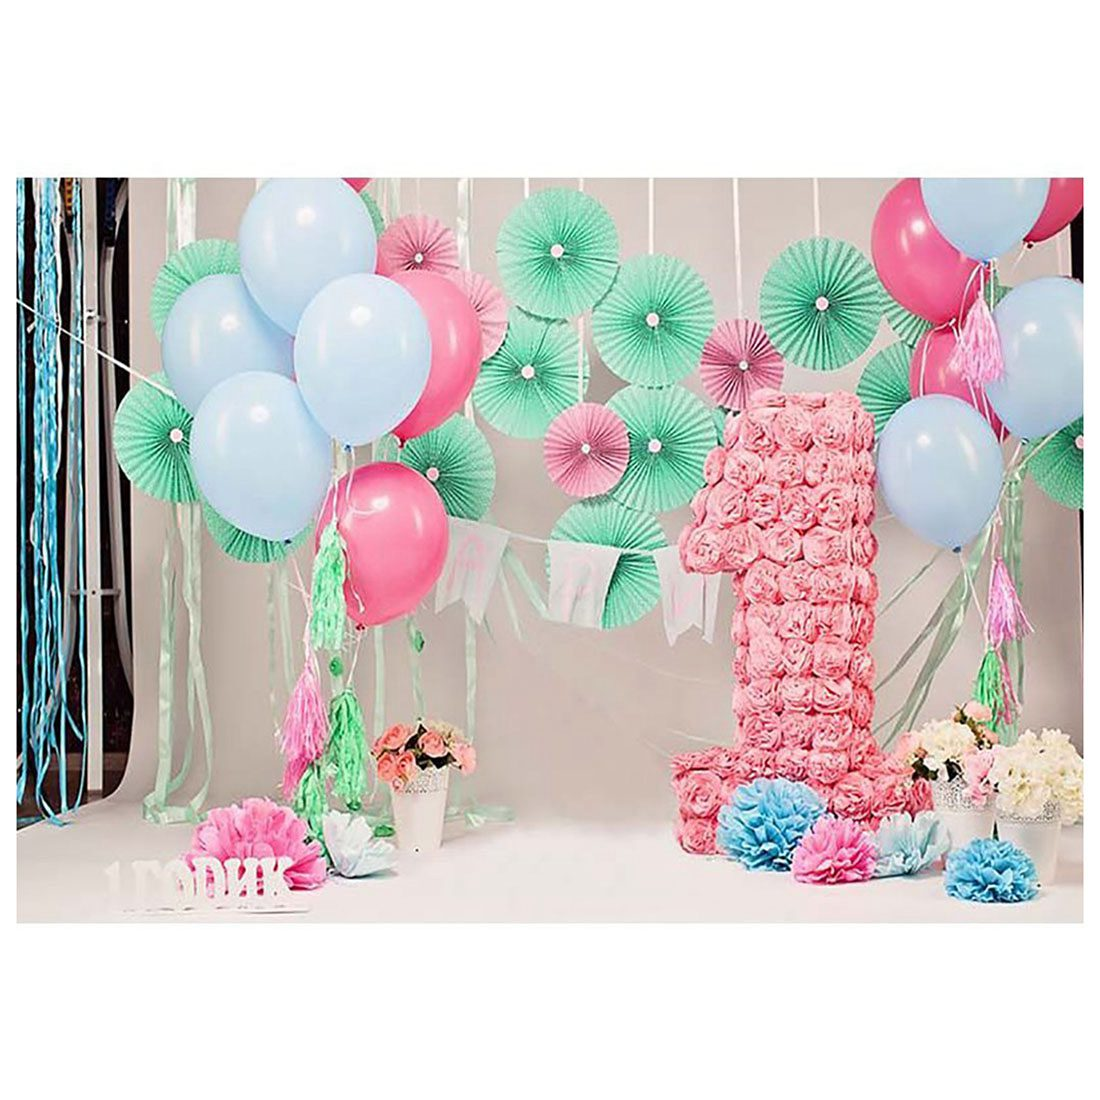 7*5ft Photography Backdrops Party Pink Balloons Florals Girls 1st birthday banner photo studio booth background photocall